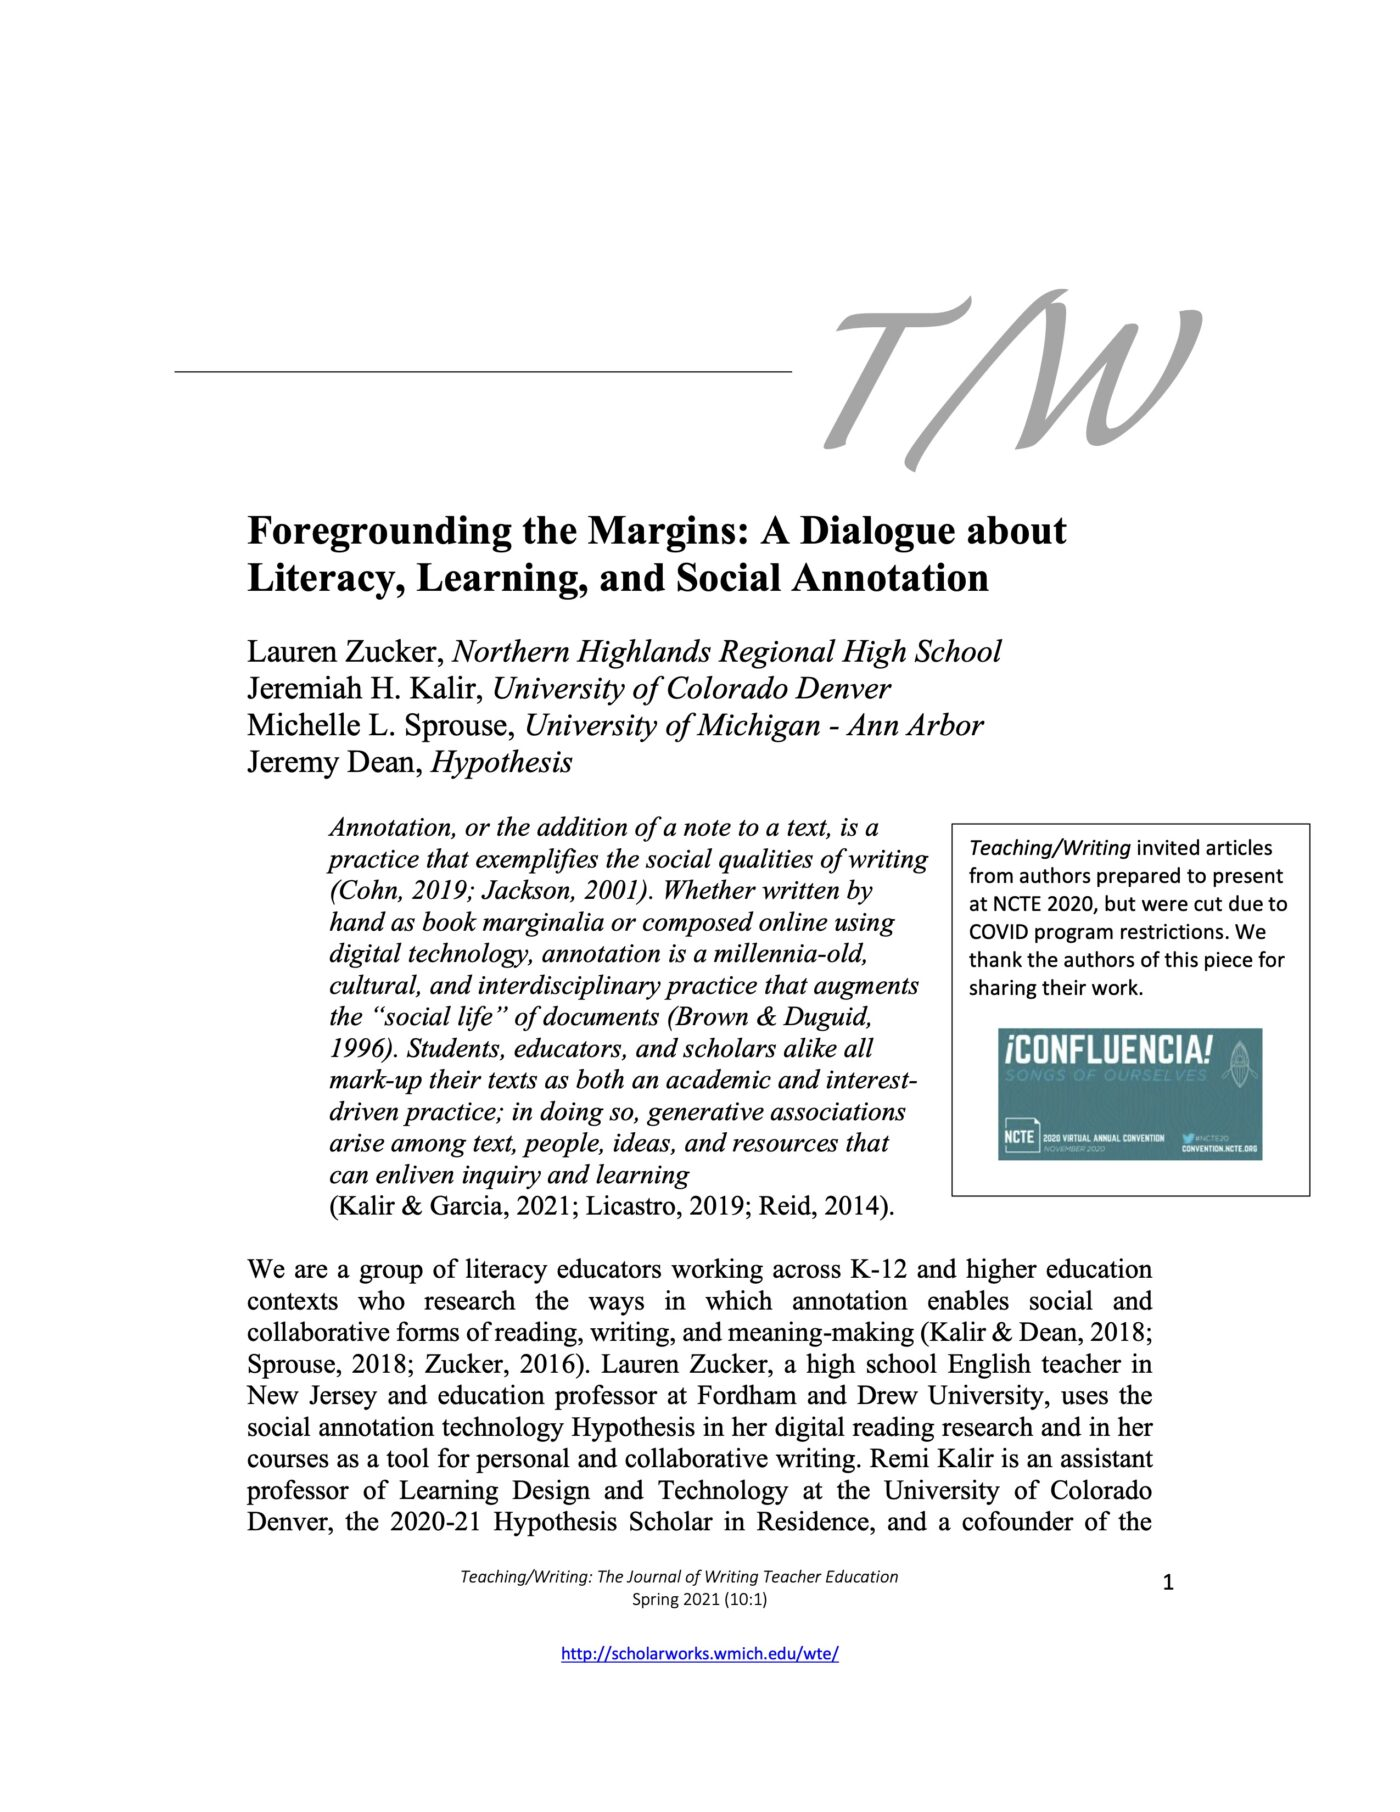 Foregrounding the Margins: A Dialogue about Literacy, Learning, and Social Annotation